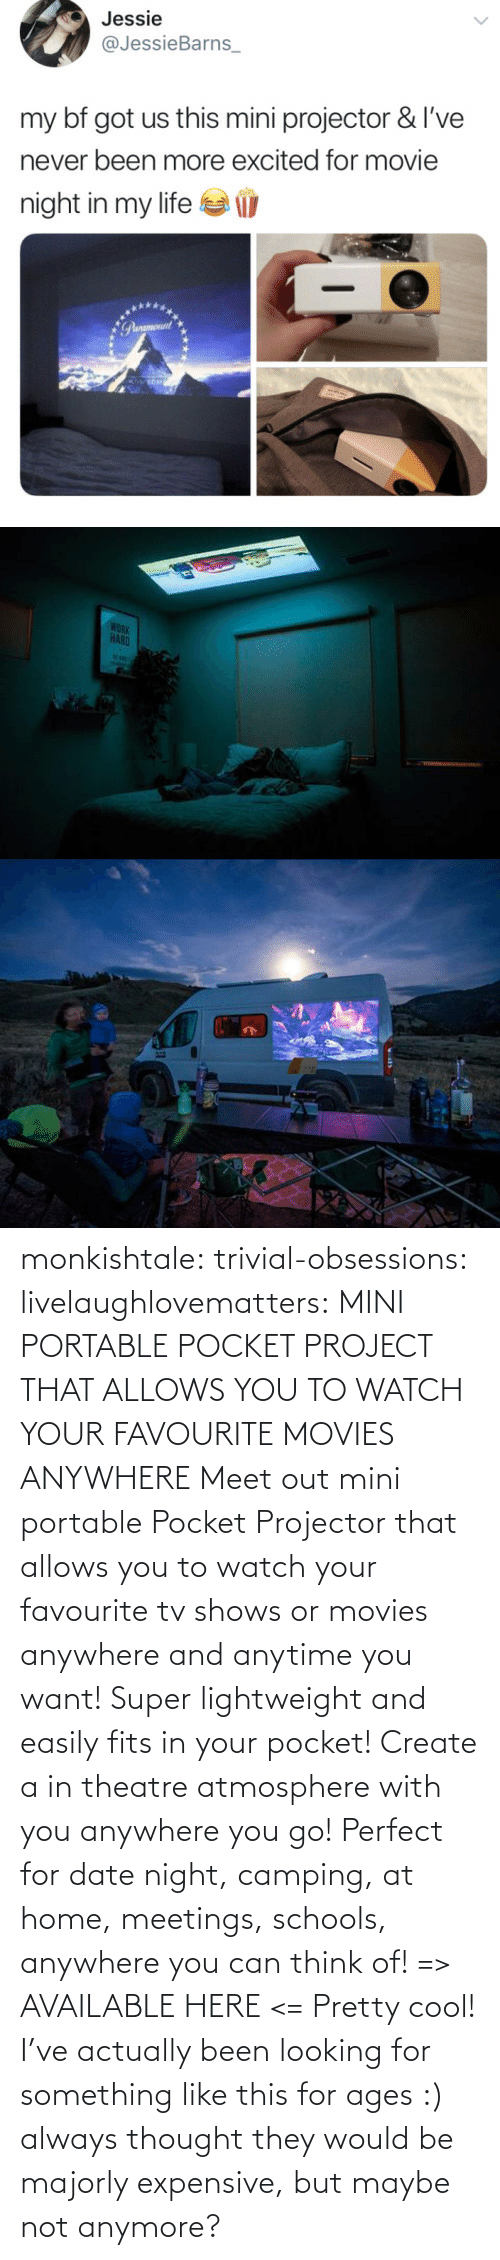 Cool: monkishtale: trivial-obsessions:   livelaughlovematters:   MINI PORTABLE POCKET PROJECT THAT ALLOWS YOU TO WATCH YOUR FAVOURITE MOVIES ANYWHERE Meet out mini portable Pocket Projector that allows you to watch your favourite tv shows or movies anywhere and anytime you want! Super lightweight and easily fits in your pocket! Create a in theatre atmosphere with you anywhere you go! Perfect for date night, camping, at home, meetings, schools, anywhere you can think of! => AVAILABLE HERE <=    Pretty cool!    I've actually been looking for something like this for ages :) always thought they would be majorly expensive, but maybe not anymore?